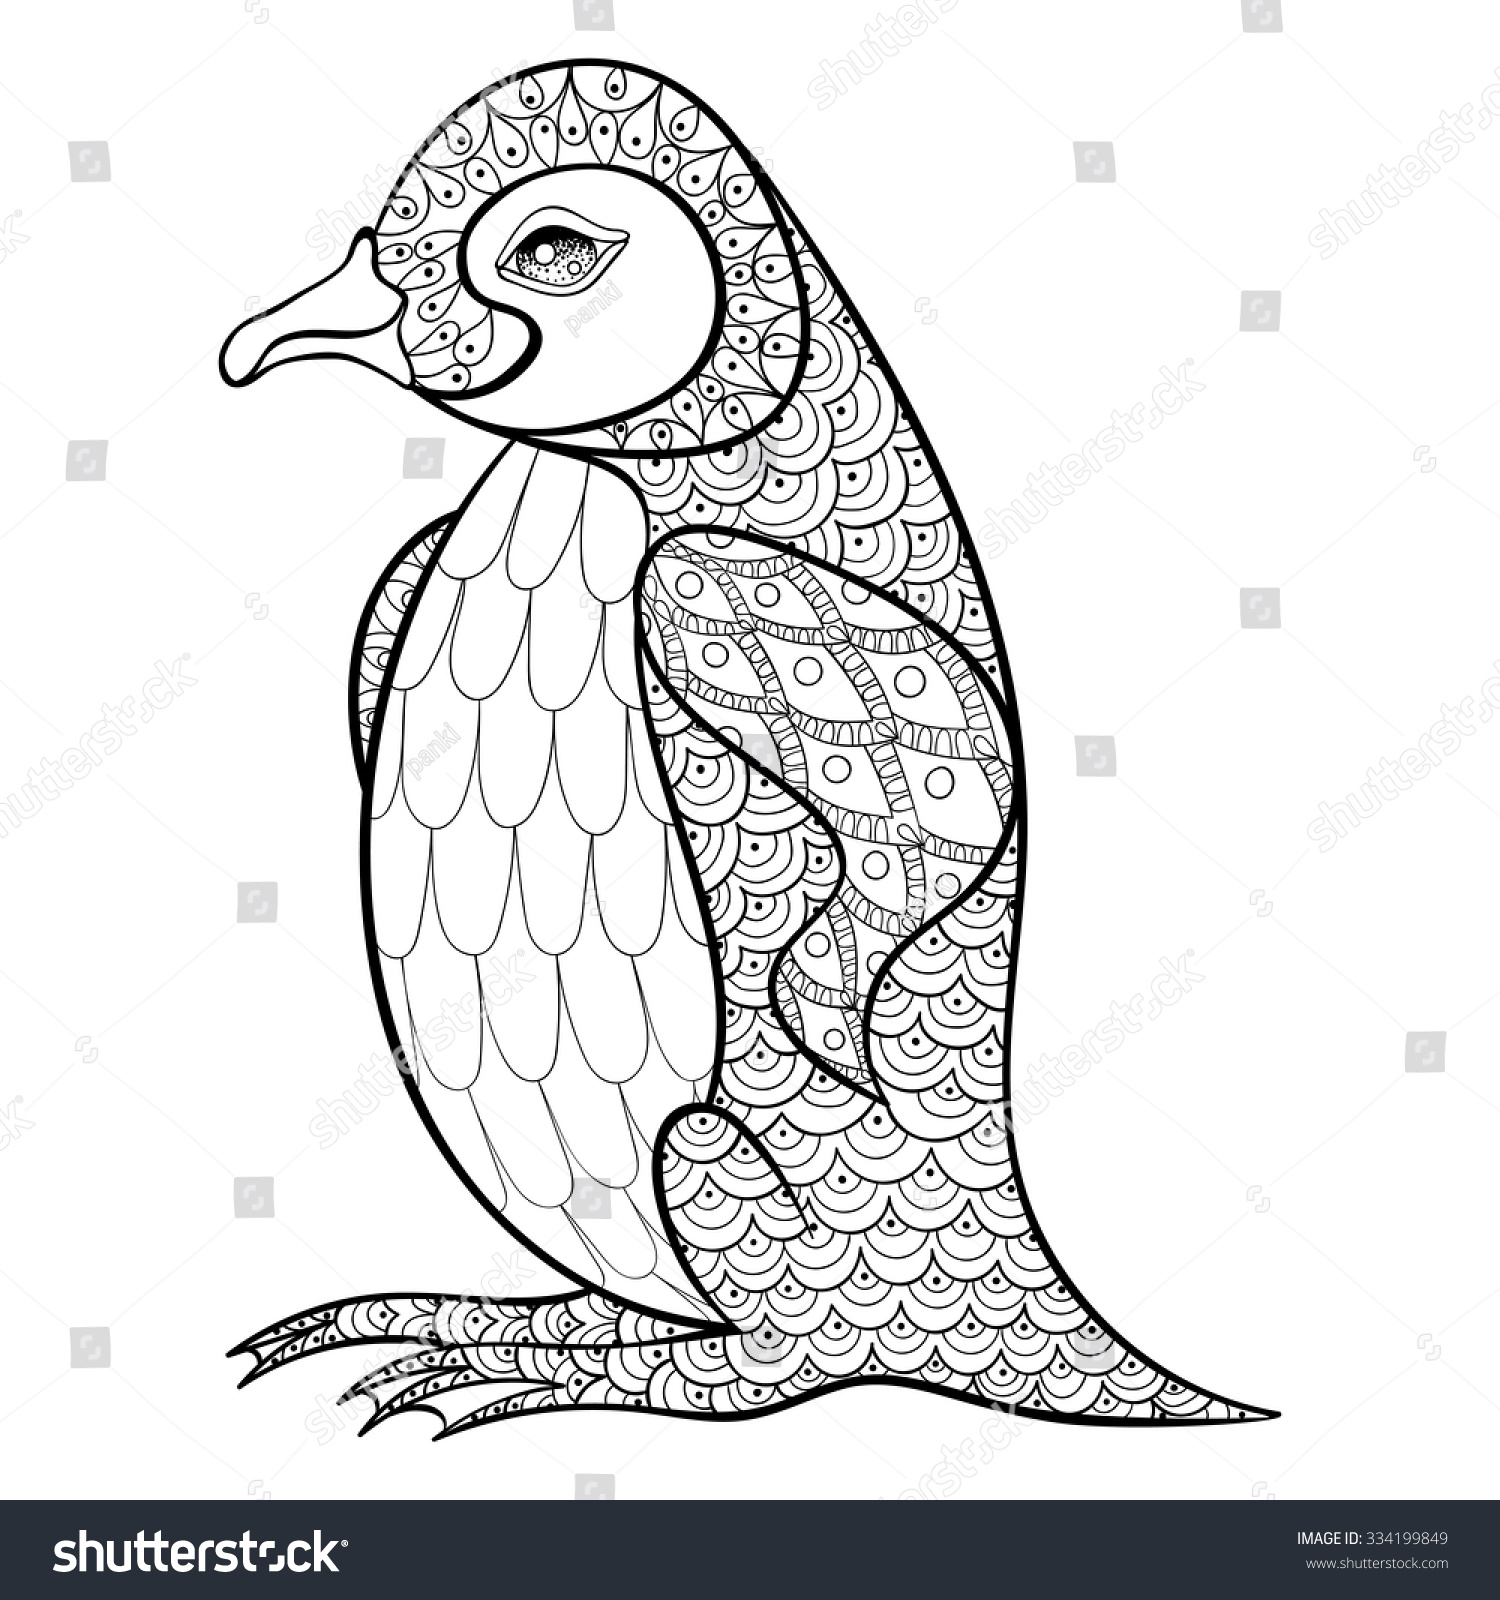 Coloring Sheets Penguins - Coloring pages with king penguin zentangle illustration for adult anti stress coloring books or tattoos